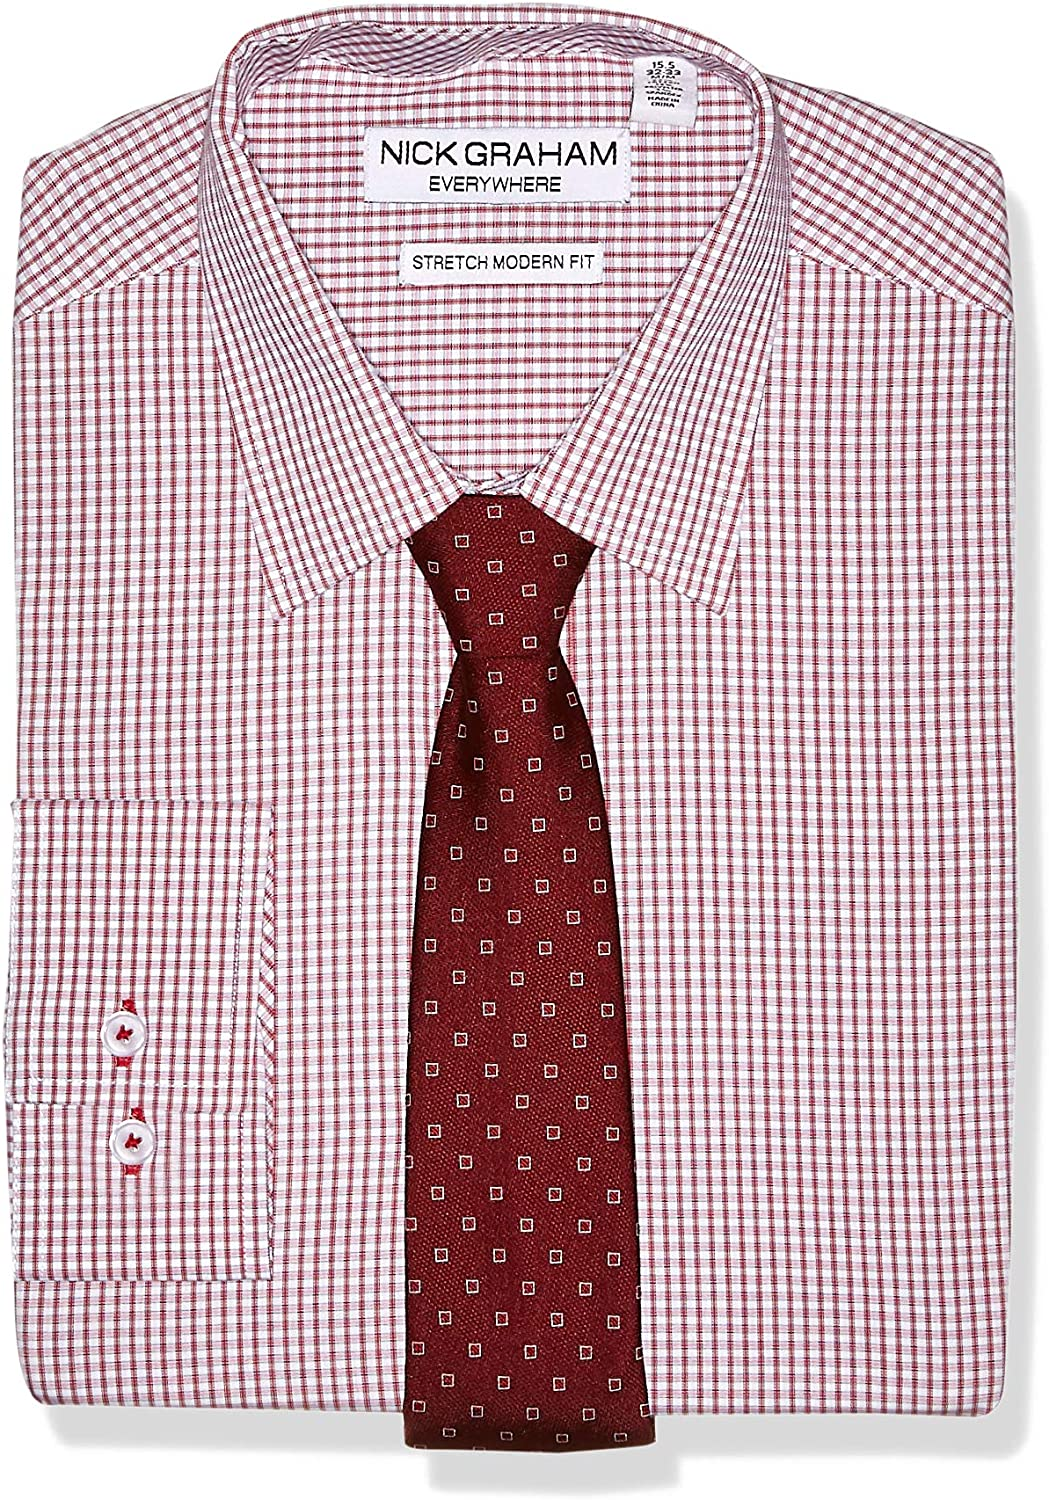 Nick Graham Men's Stretch Modern Fit Dress and New popularity Plaid Shirt NEW before selling ☆ Dot T